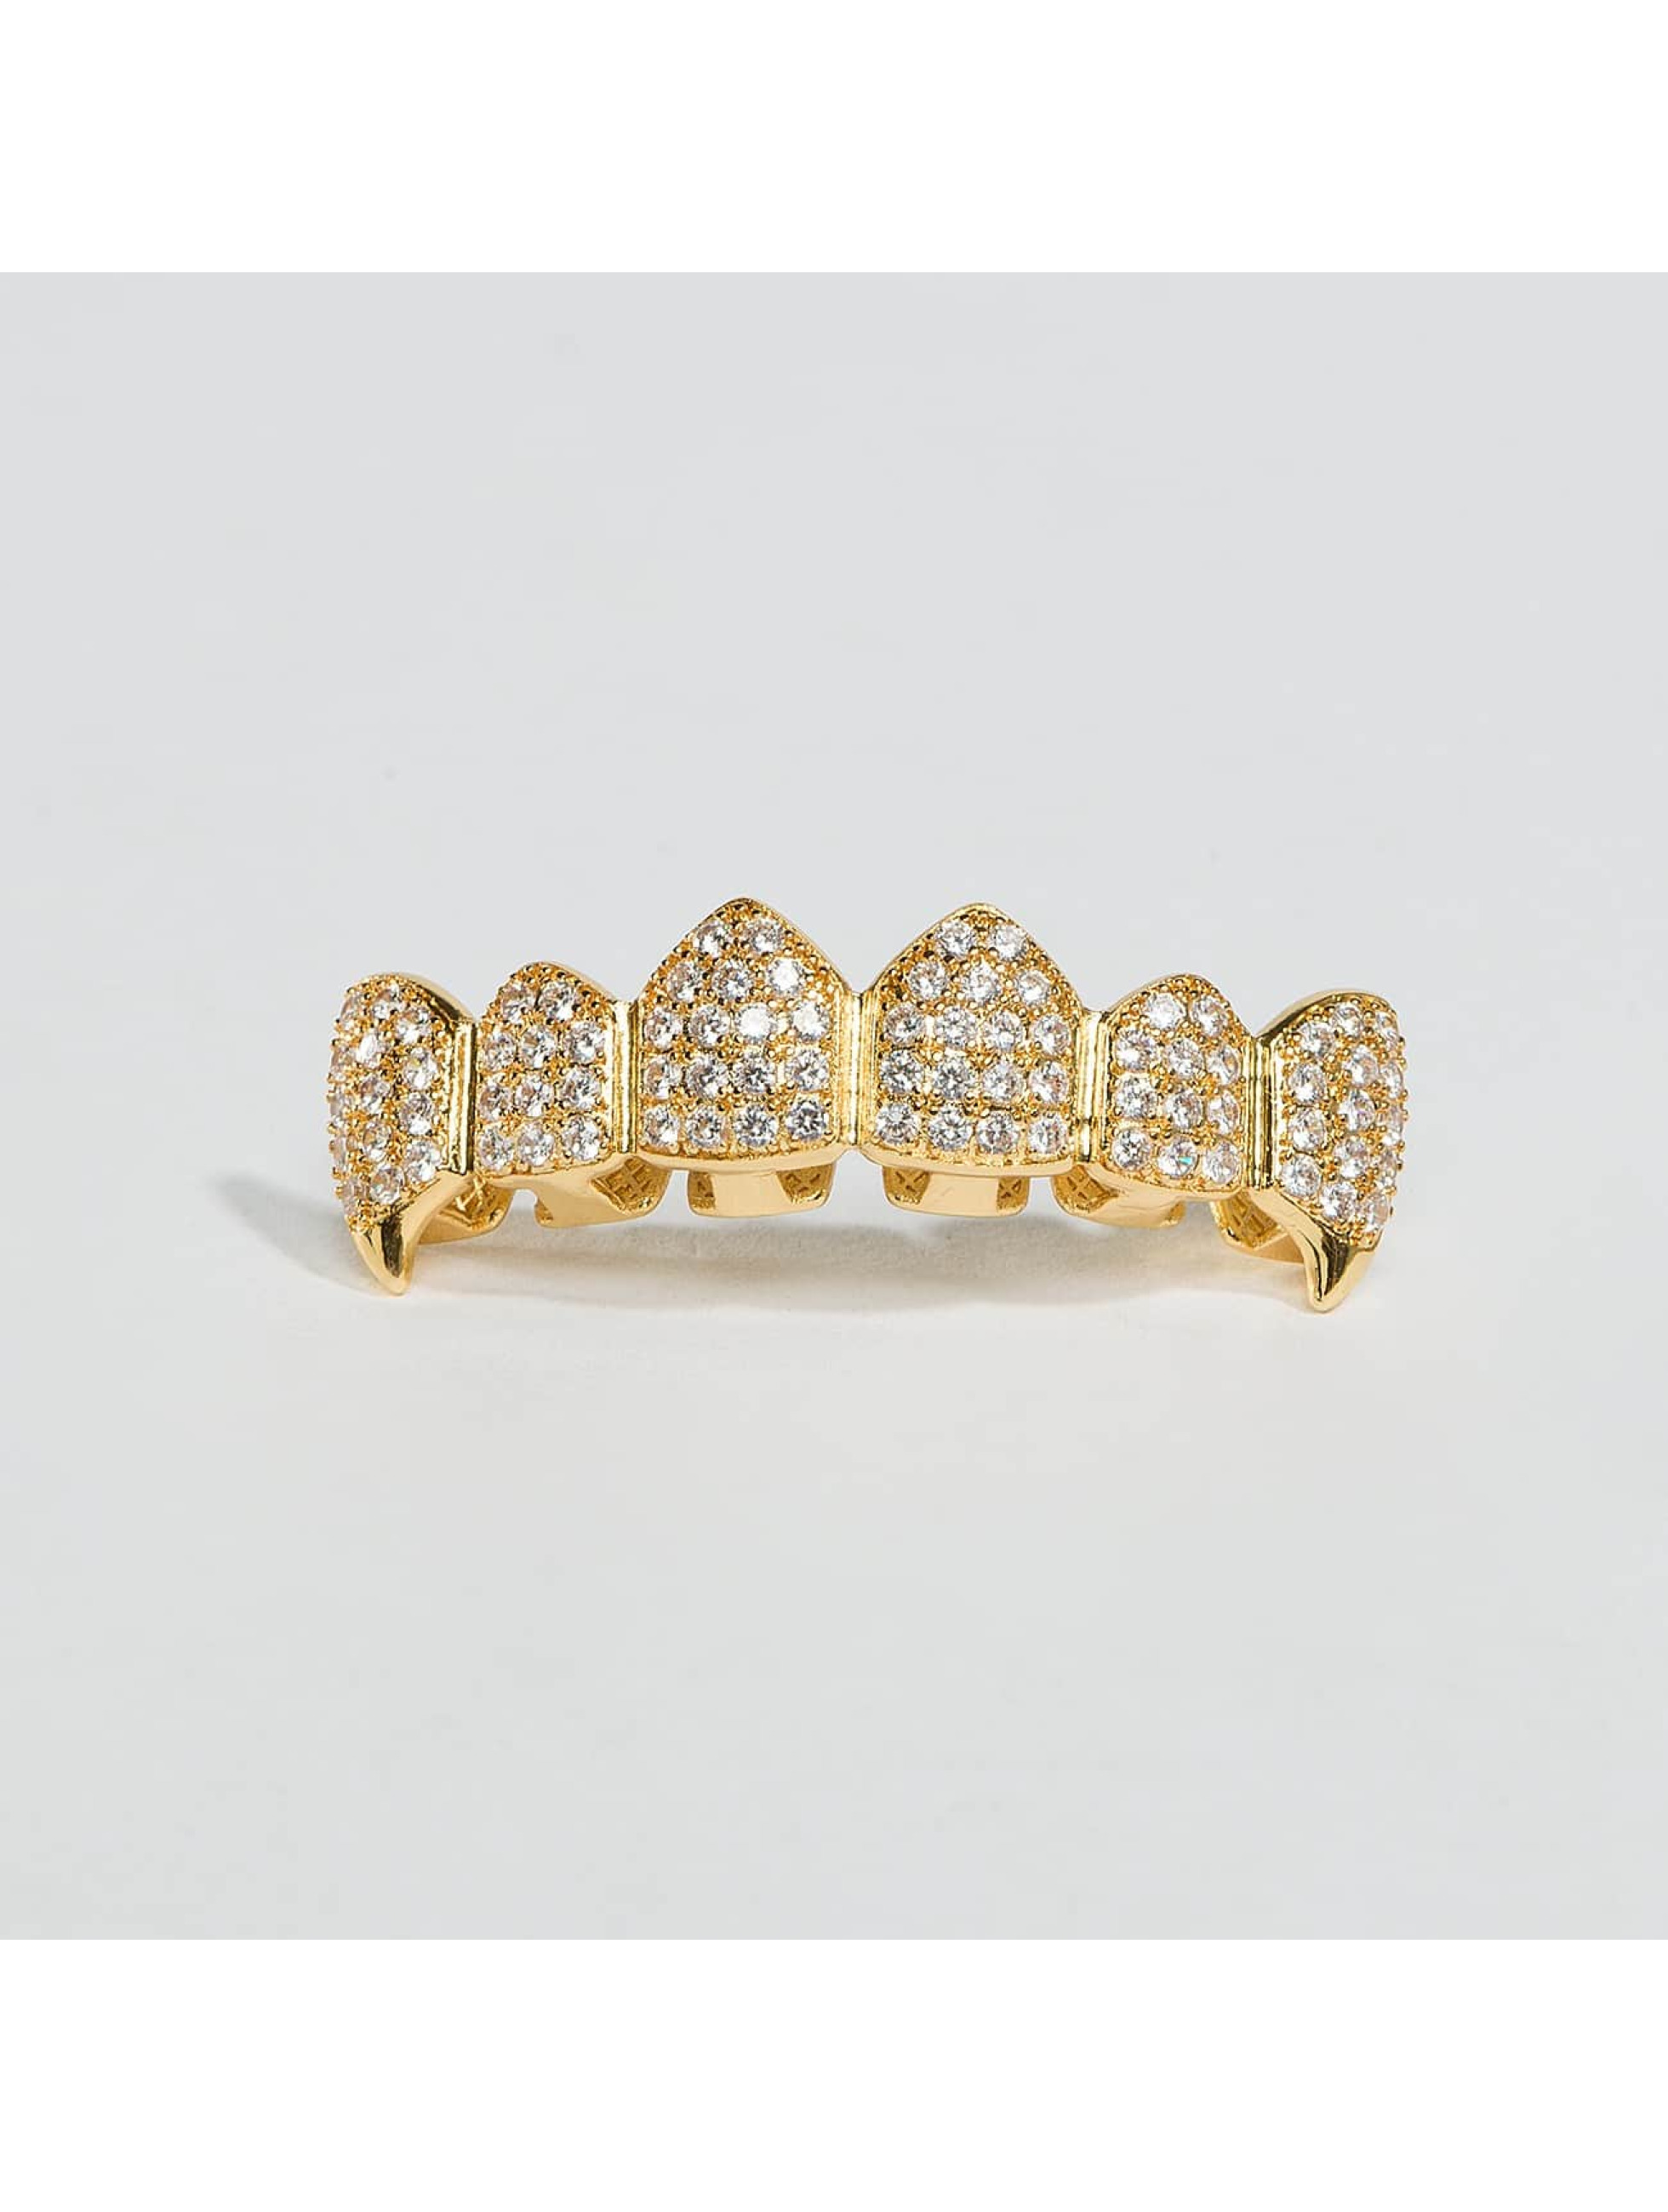 KING ICE Autres Gold_Plated CZ Dracula Teeth Top or